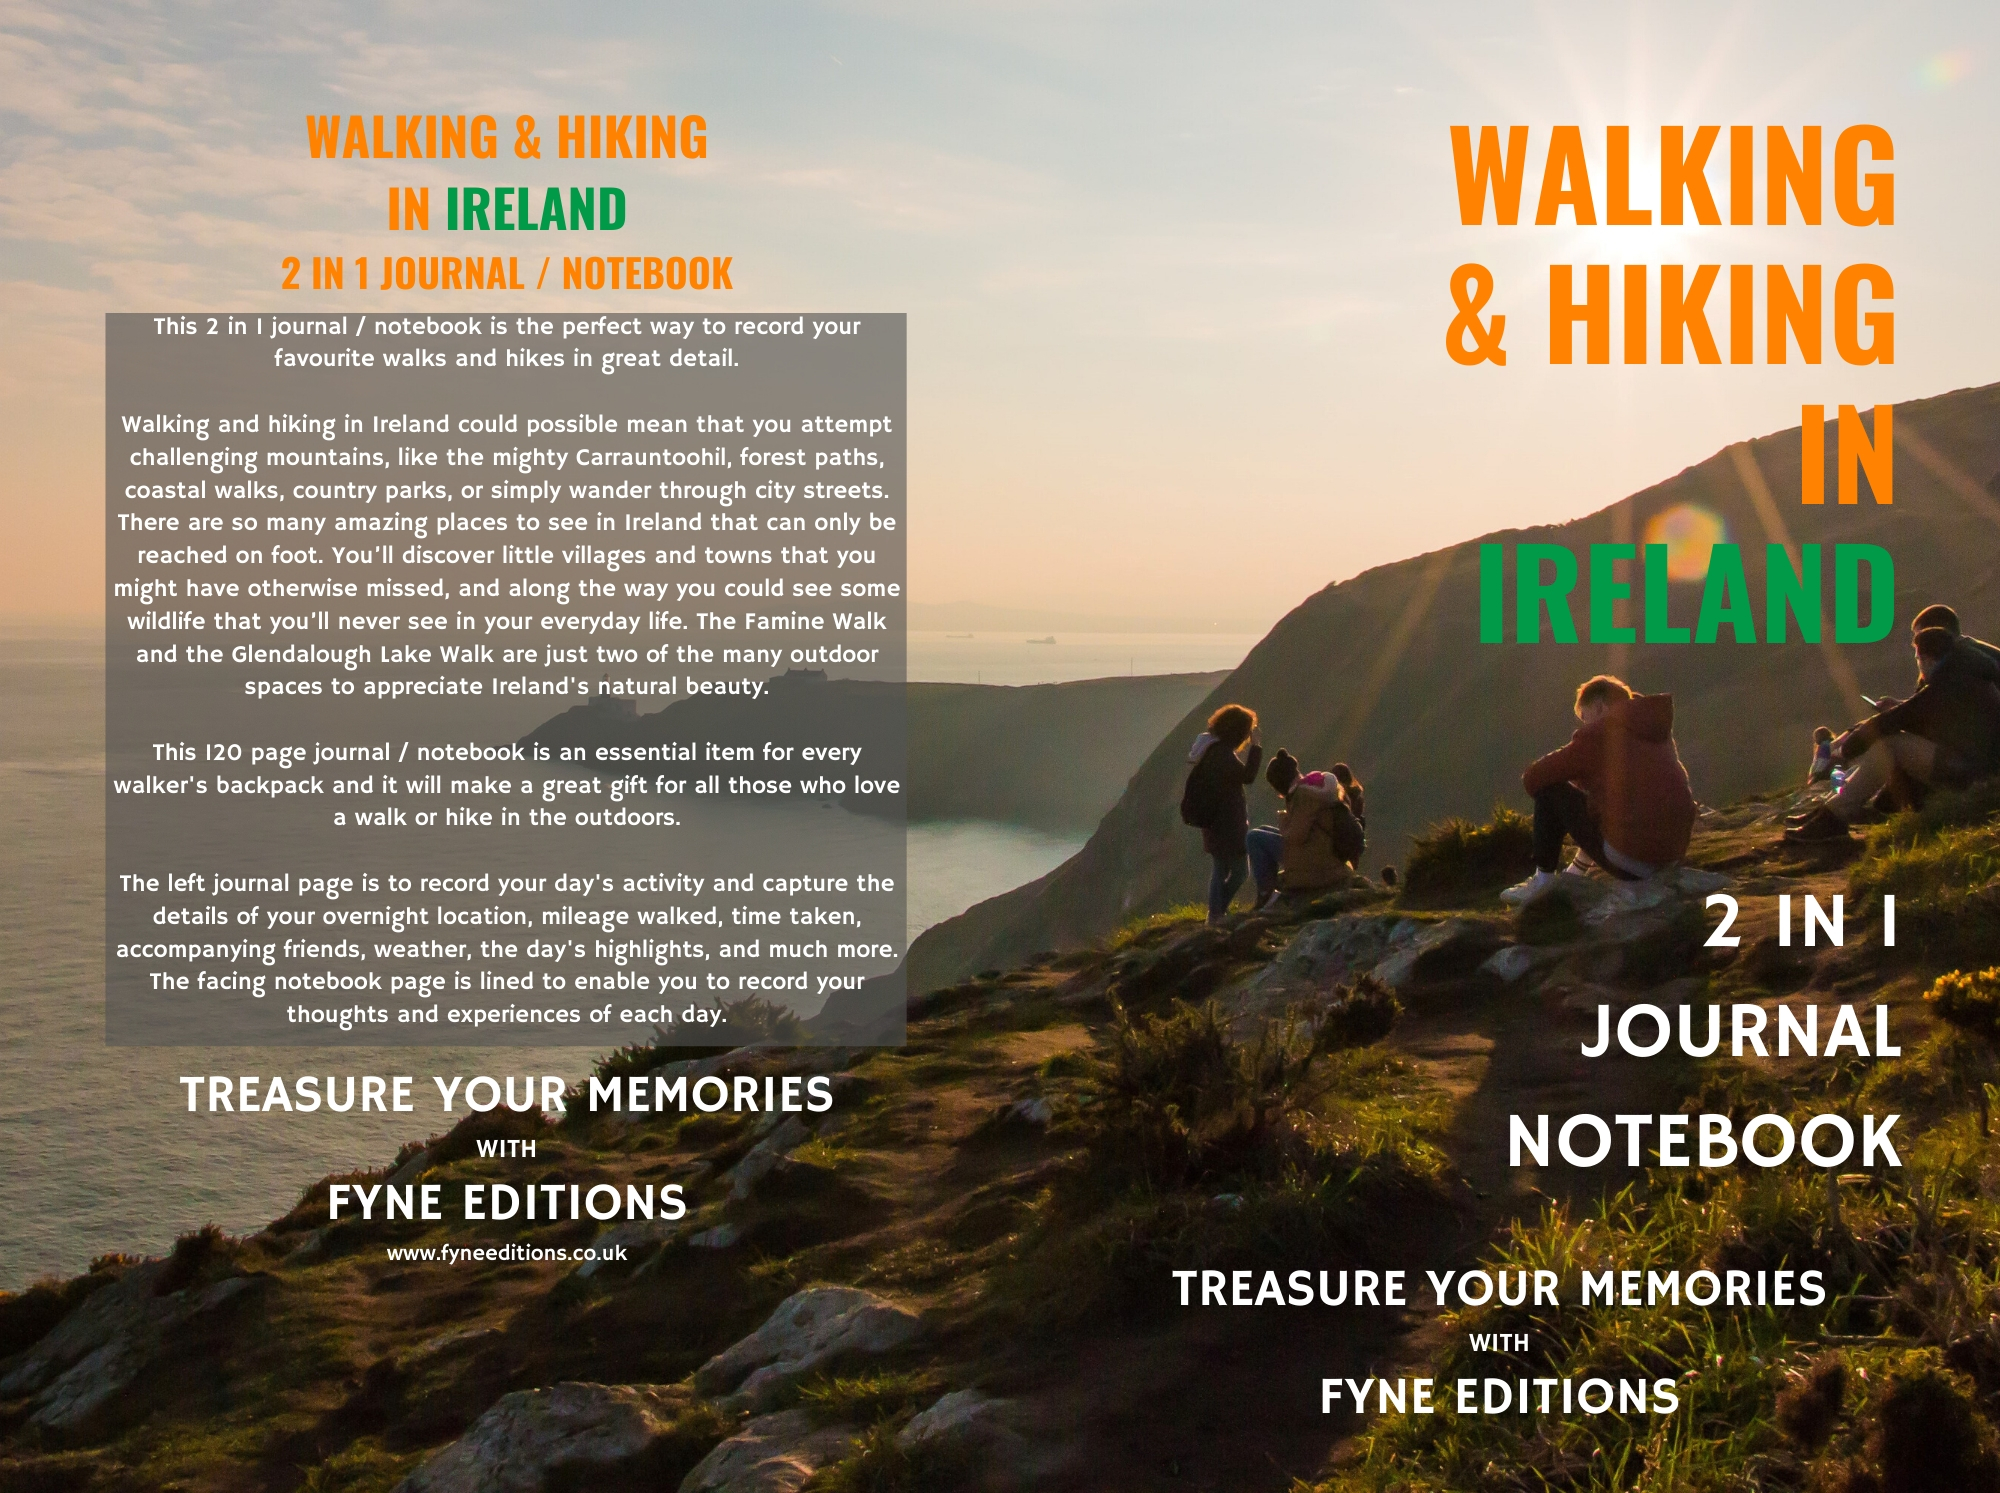 Walking & Hiking in Ireland Journal & Notebook